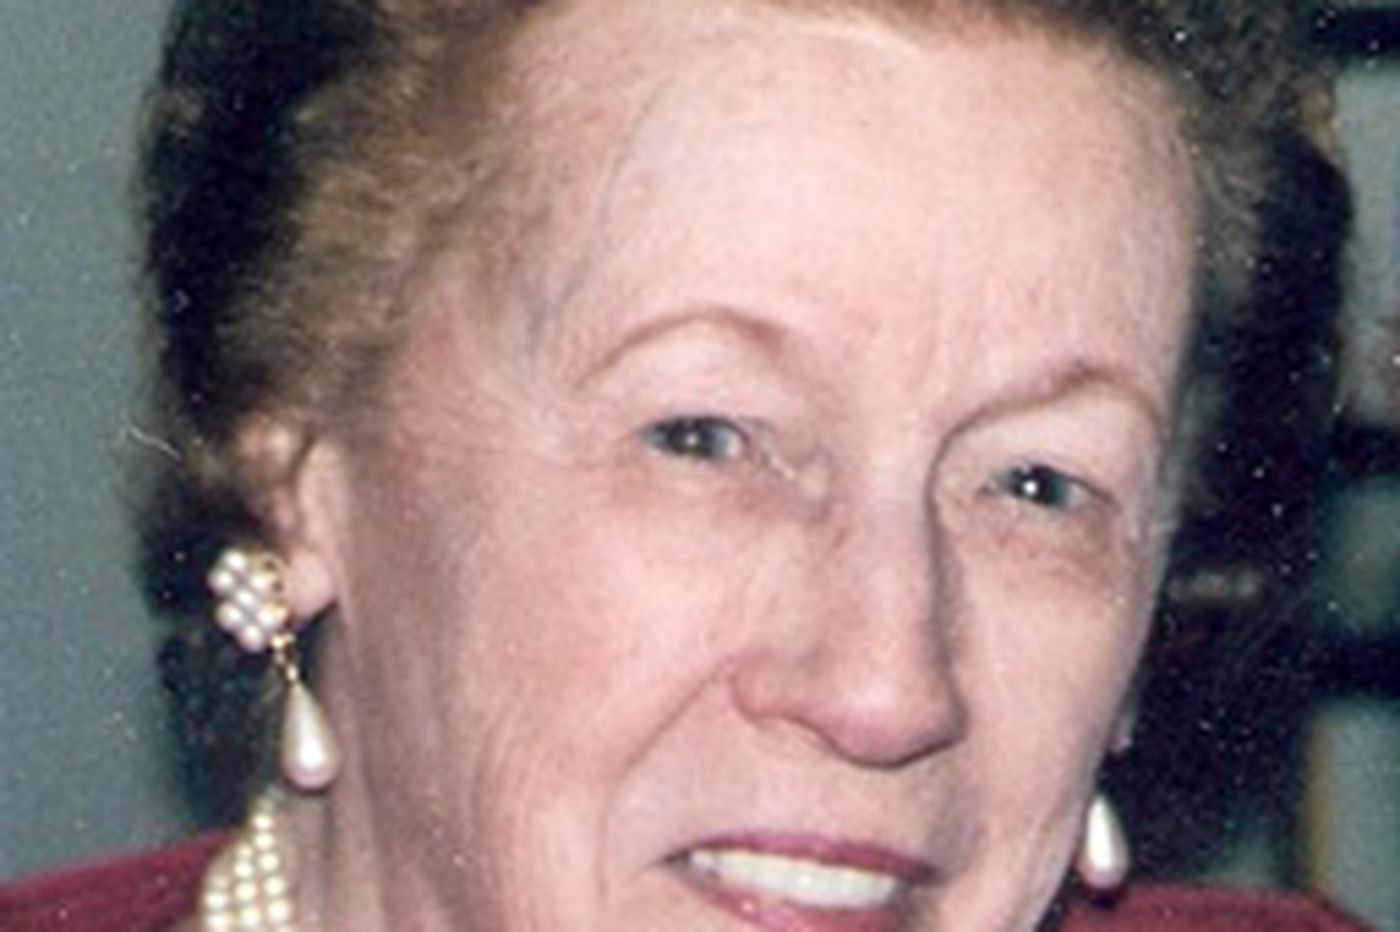 Gertrude C. Meninger, 89, former business executive